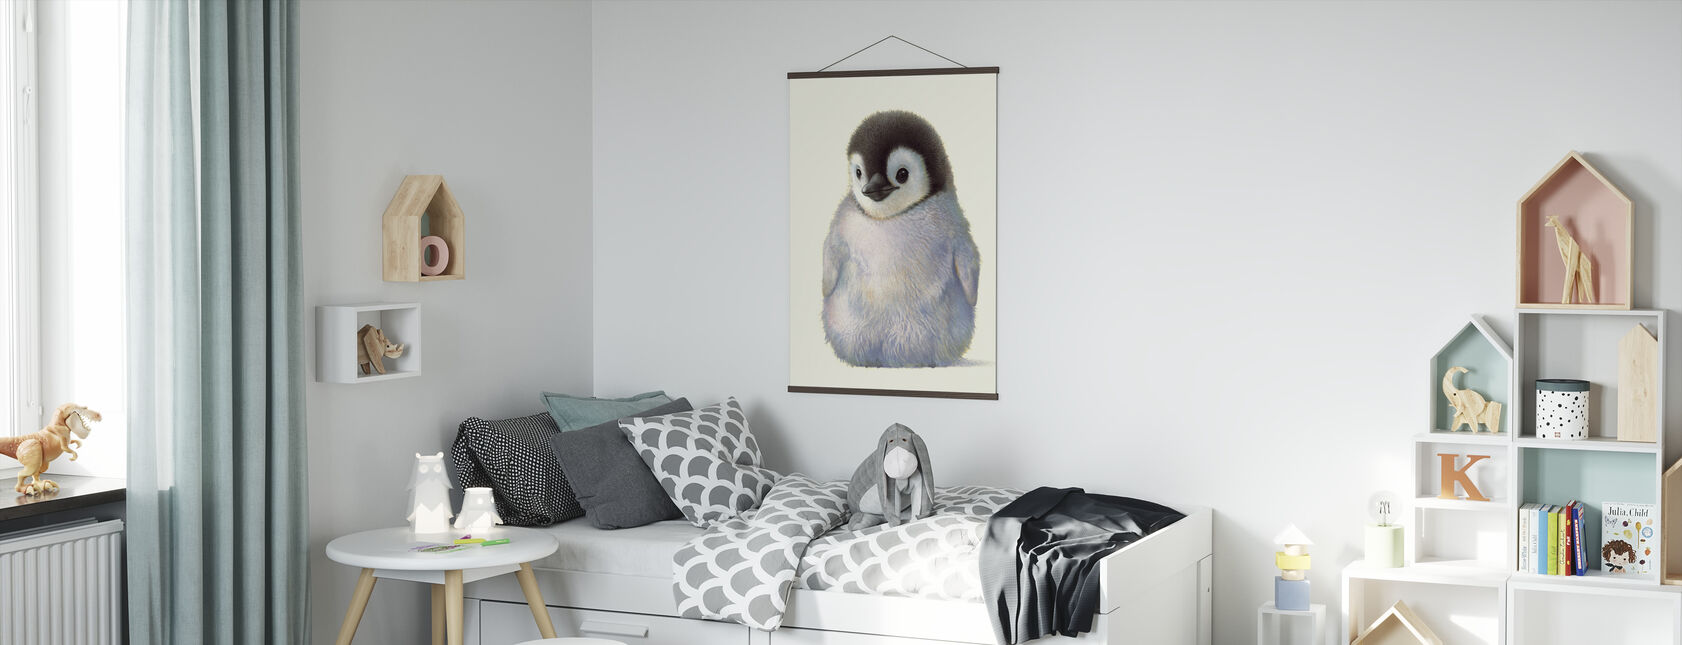 Penguin Chick - Poster - Kids Room